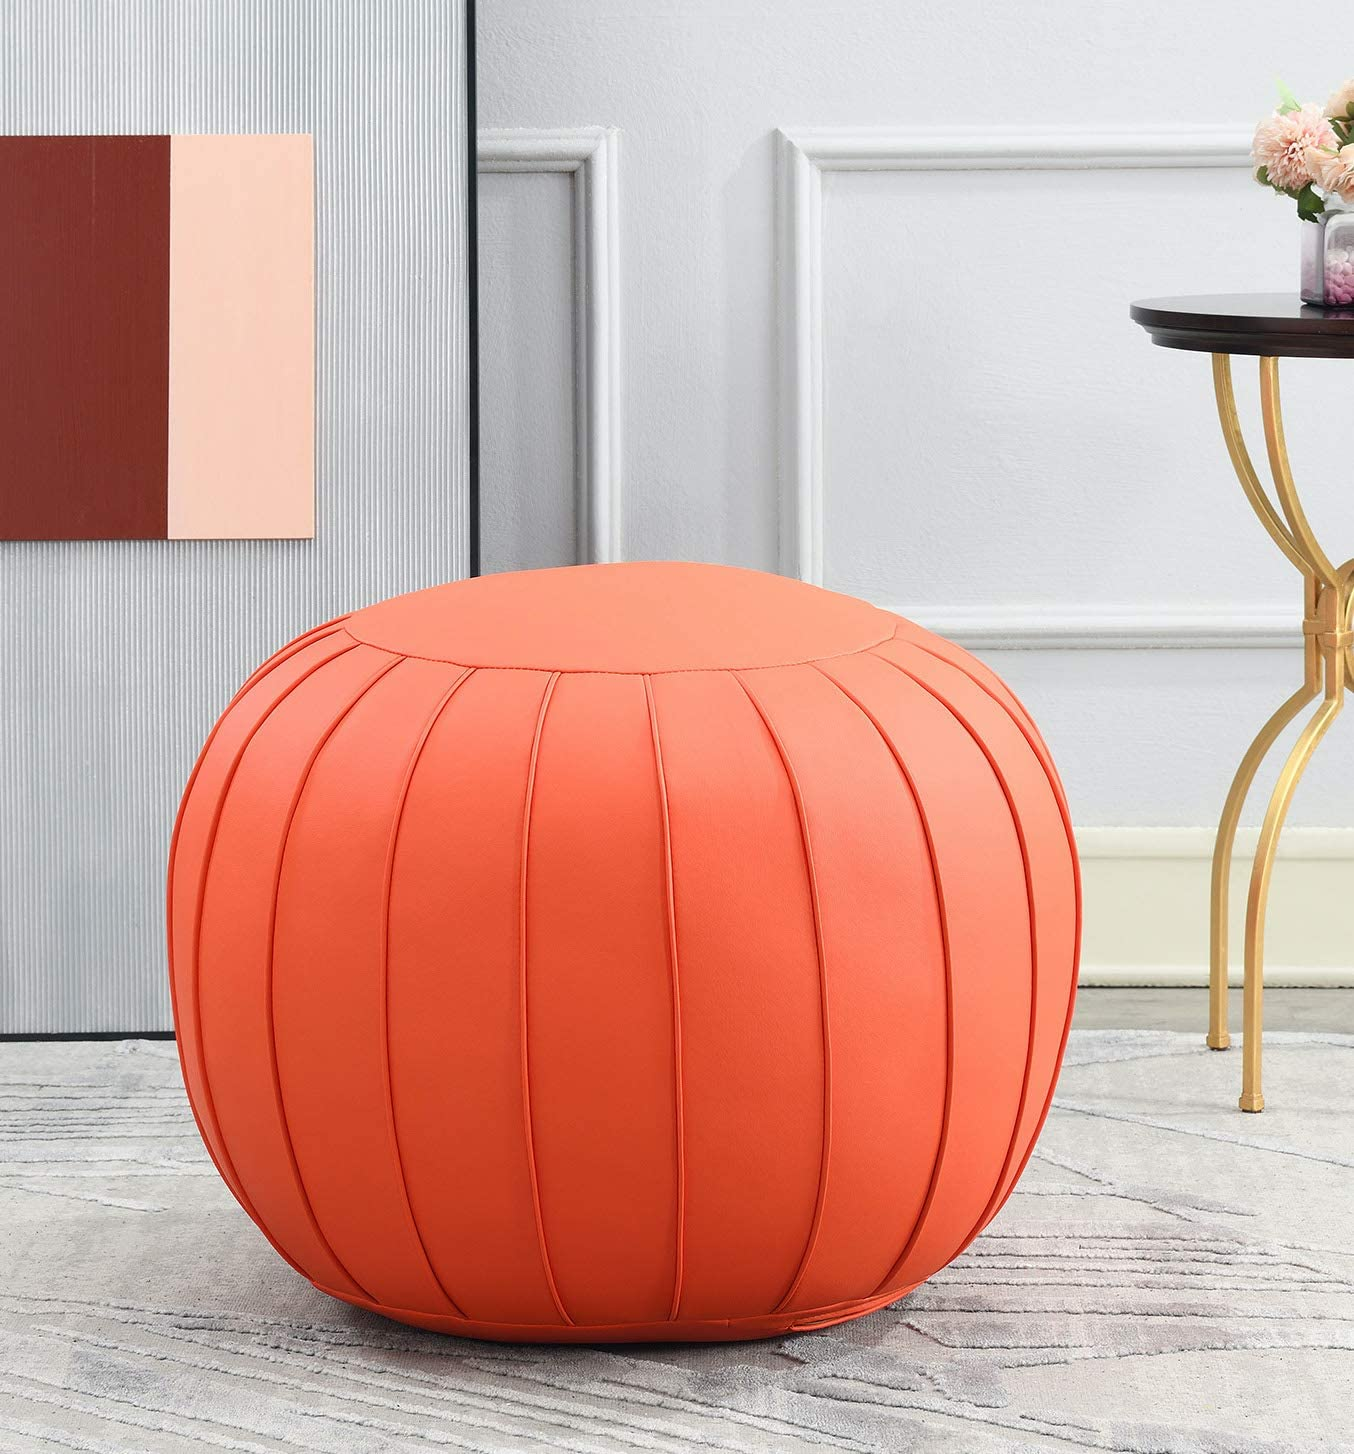 Comfortland Unstuffed Pouf Covers, Folding Faux Leather Ottoman Poufs,25x17 Foot Rest, Foot Stool, Bean Bag Chair, Storage Solution for Living Room, Bedroom, Kids Room or Wedding Gifts(Orange red)